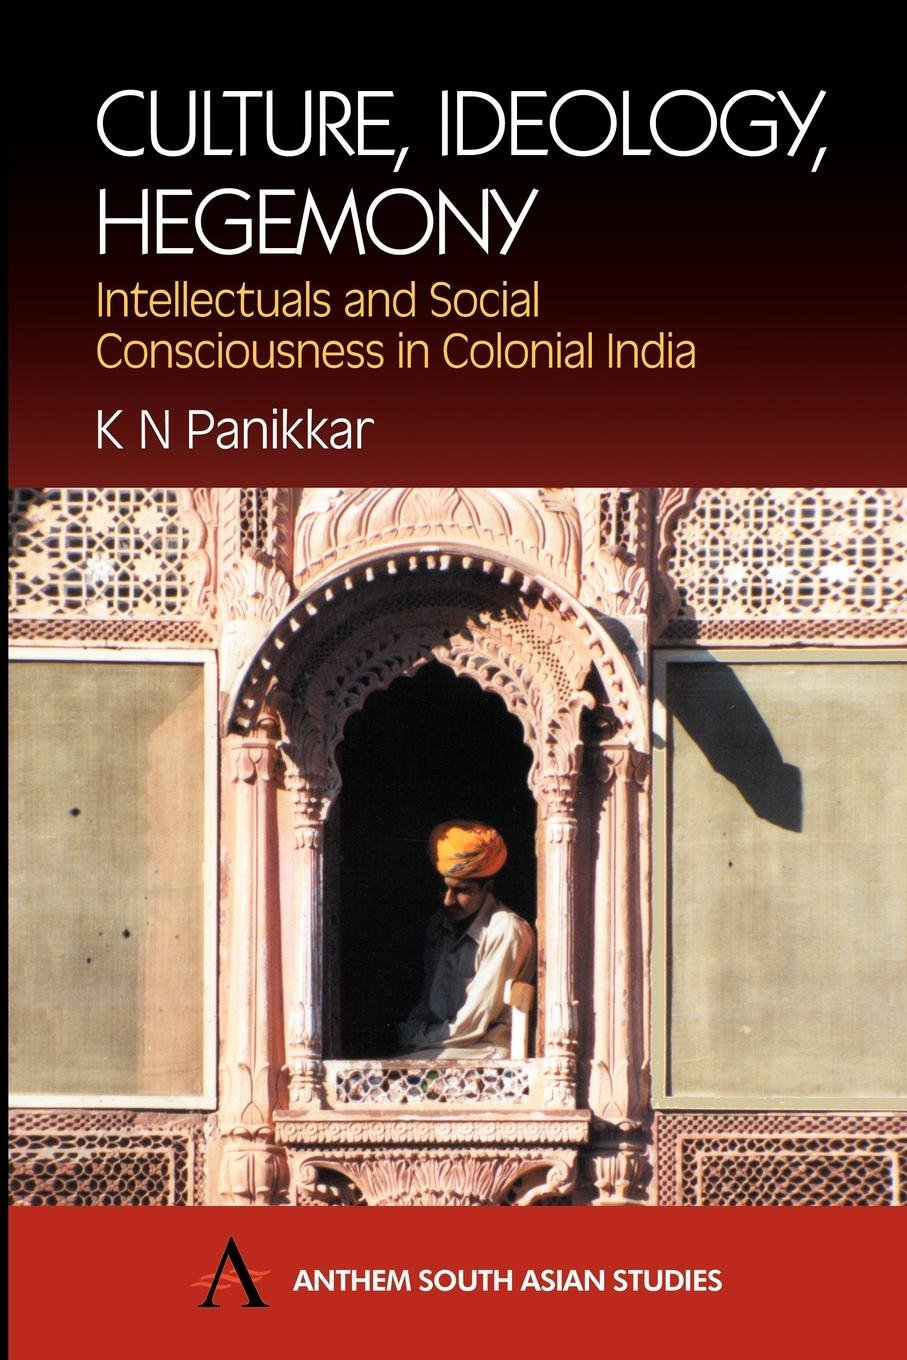 Download Culture, Ideology, Hegemony: Intellectuals and Social Consciousness in Colonial India (Anthem South Asian Studies) PDF